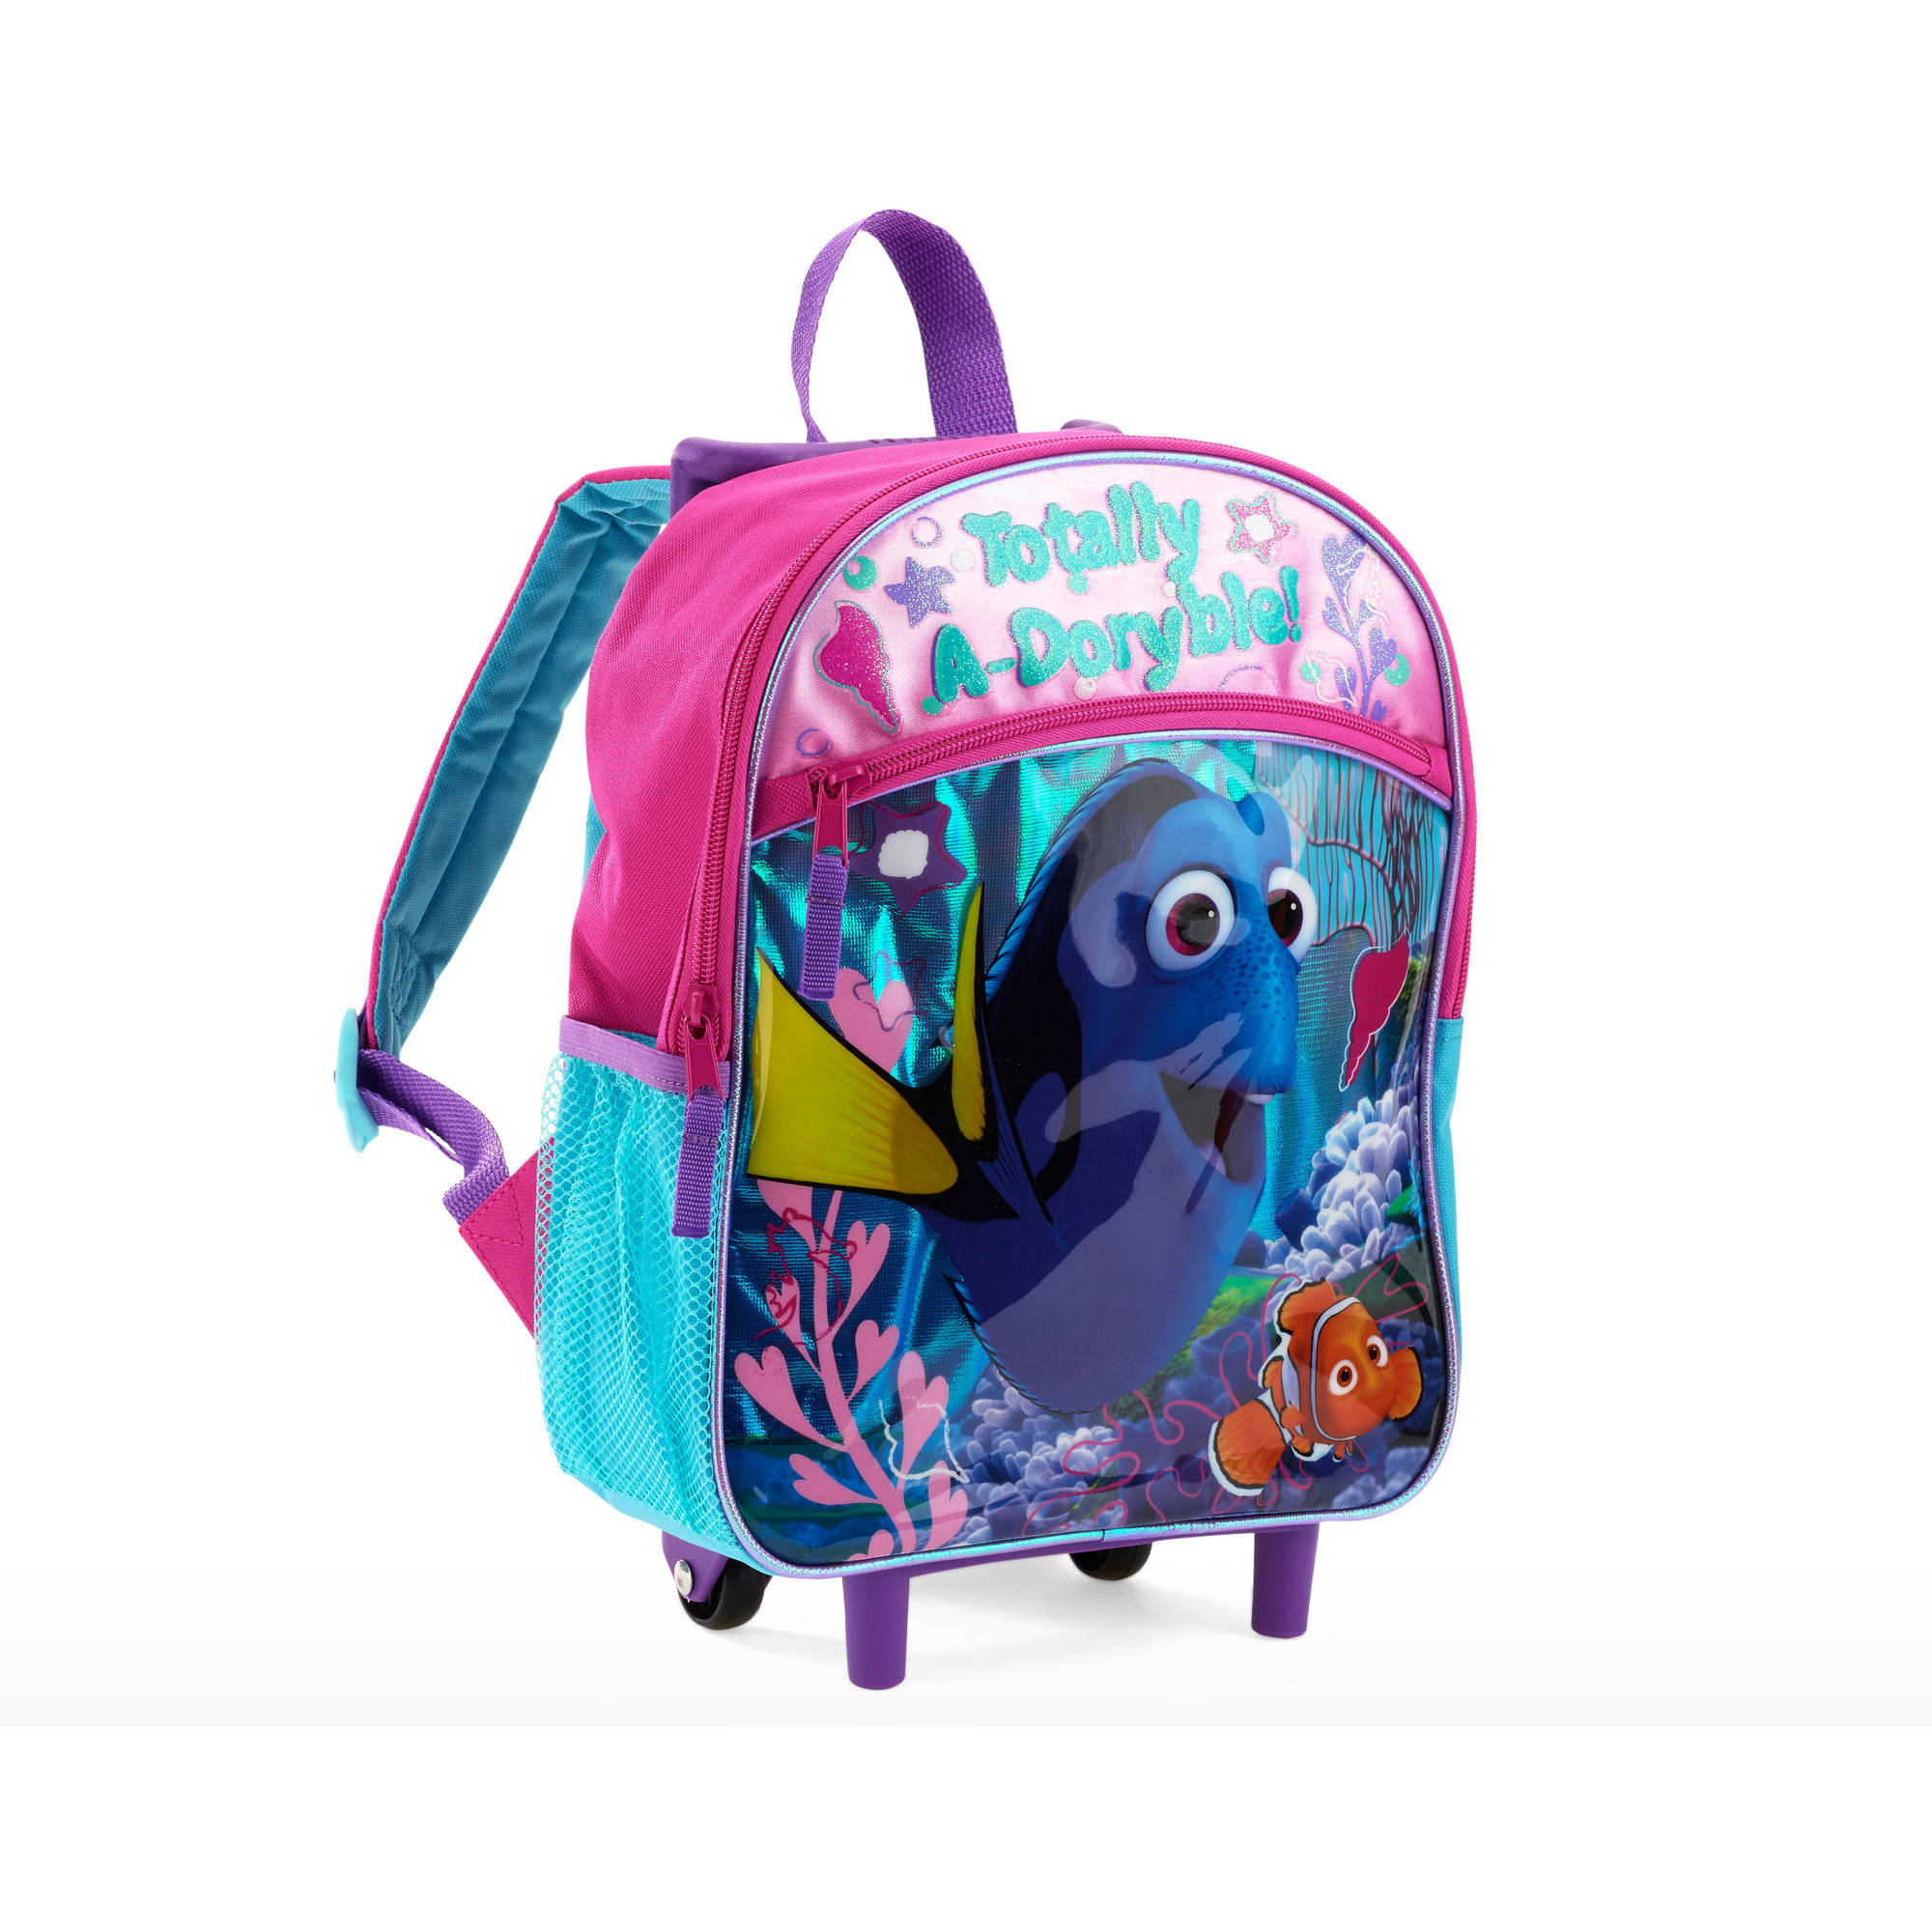 Finding Dory 12 Inch Rolling Backpack - Walmart.com